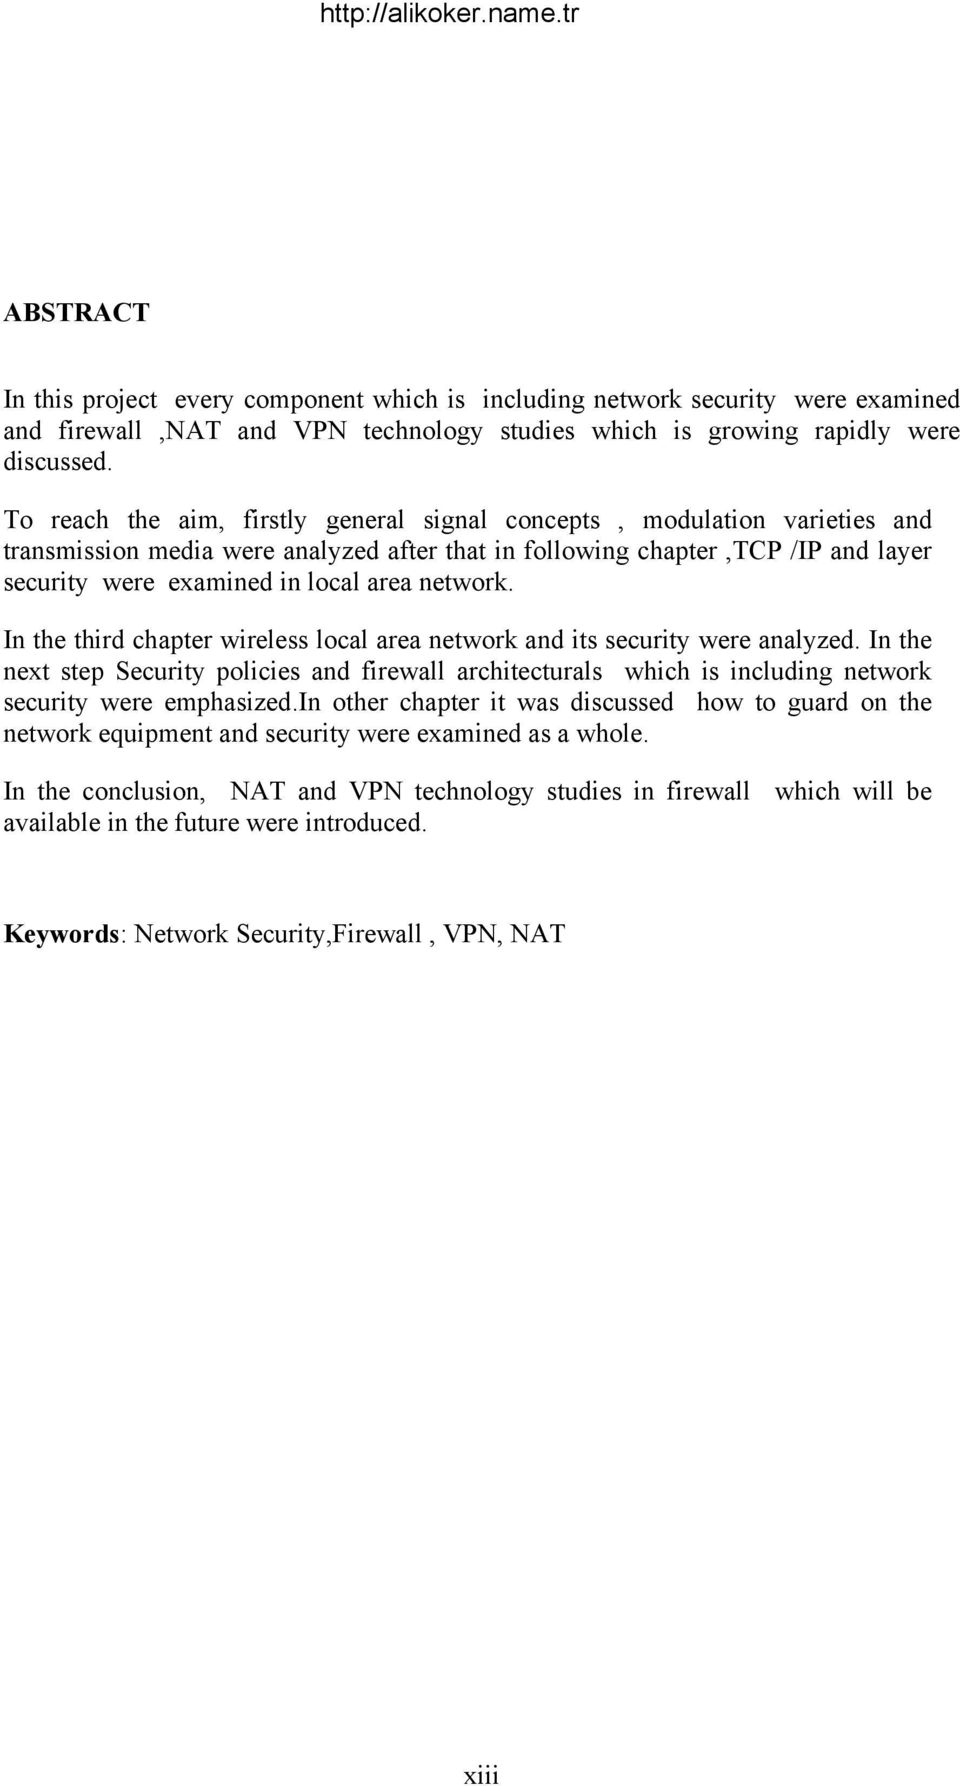 network. In the third chapter wireless local area network and its security were analyzed.